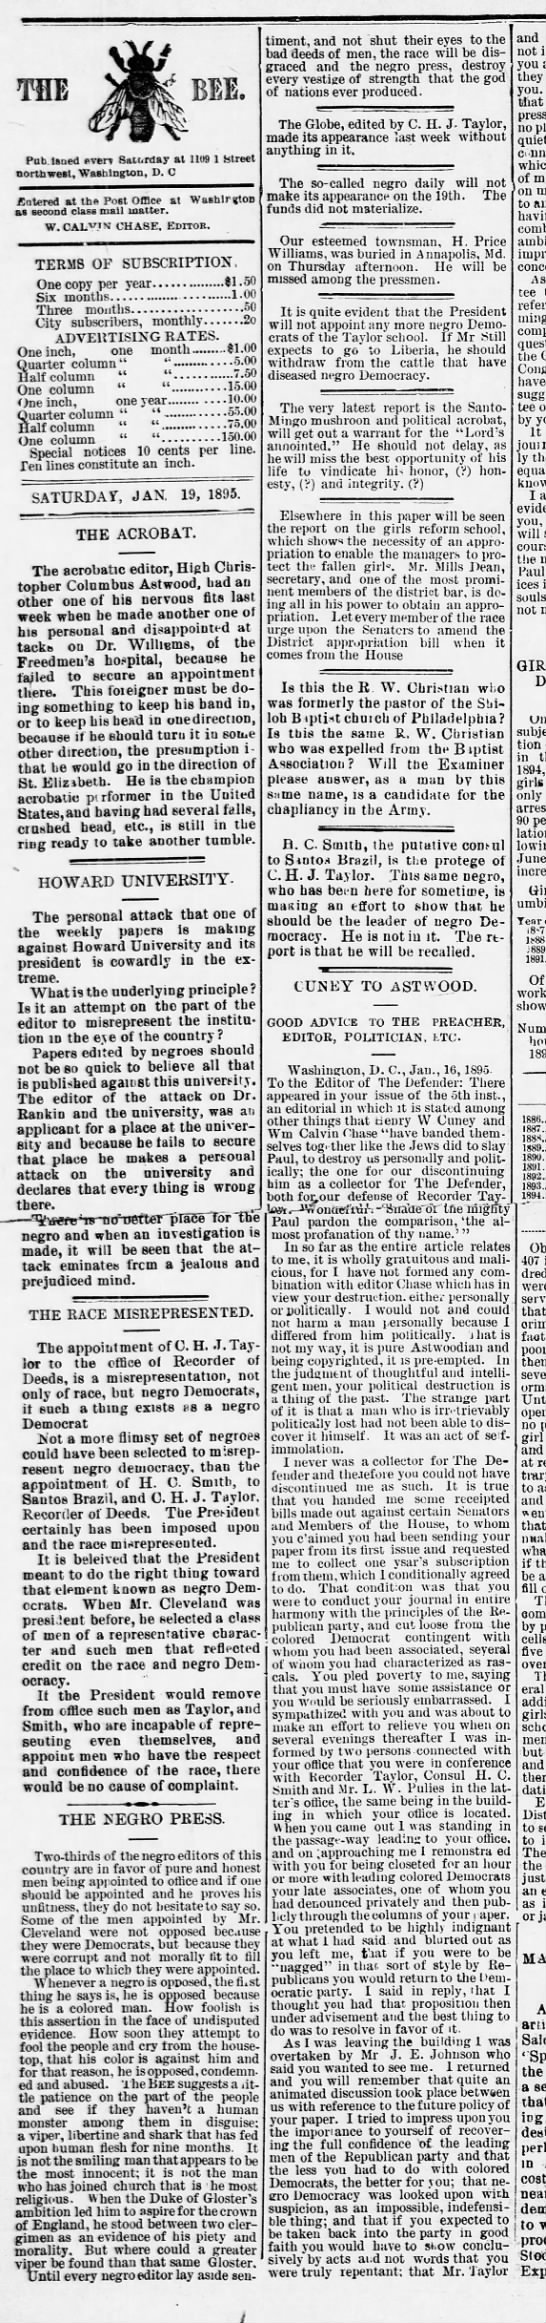 1895-01-19-WashingtonBee-p2-MiscCHJTaylor -